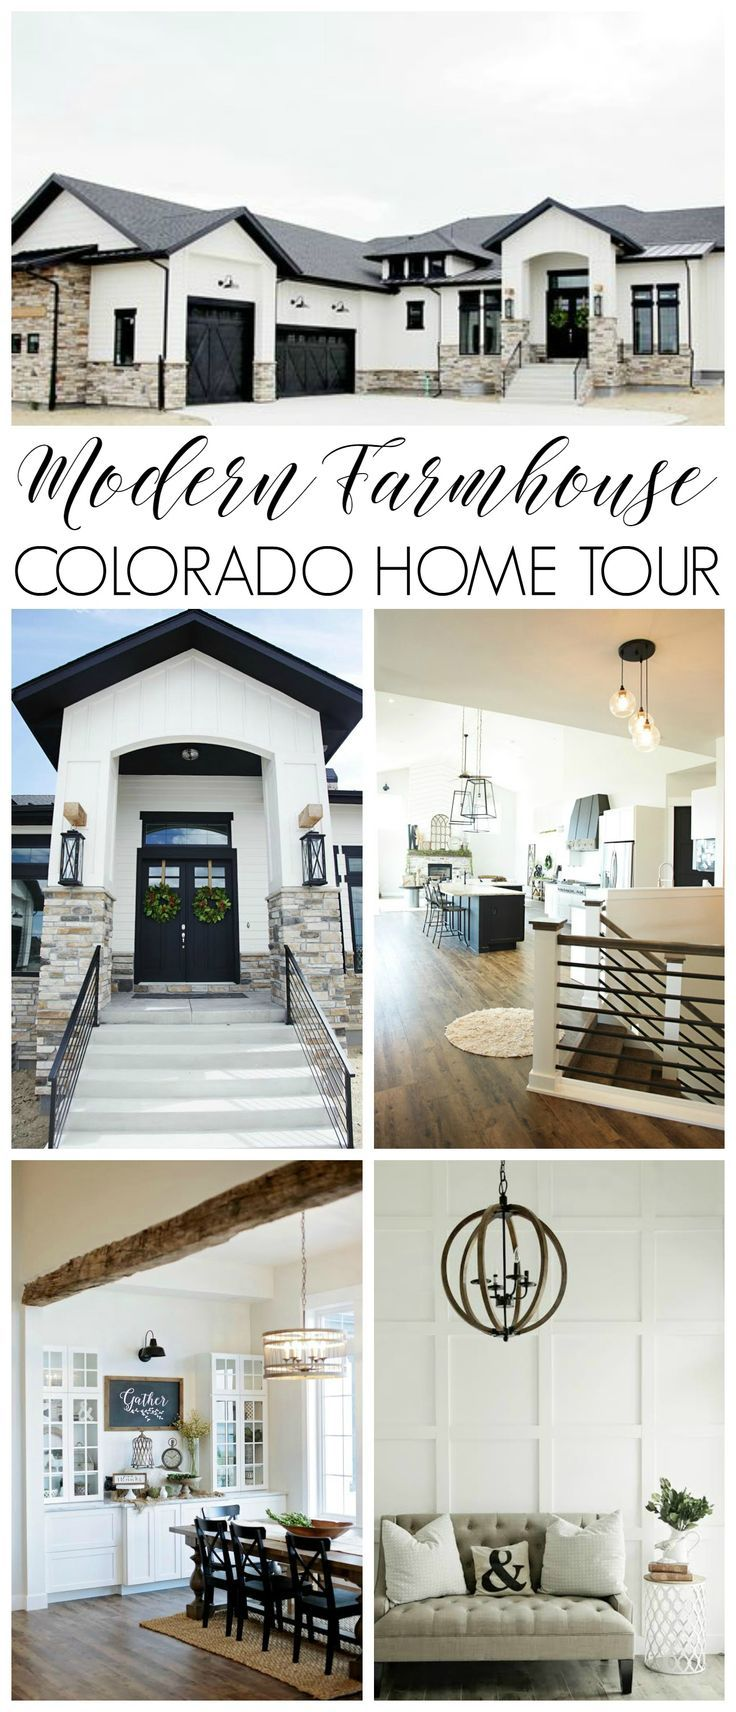 Custom Built Modern Farmhouse Home Tour with Household No 6 | You'll find rustic barn wood beams, vaulted ceilings, wood floors and farmhouse style goodness, with a twist. (Best Kitchen Dream Homes)